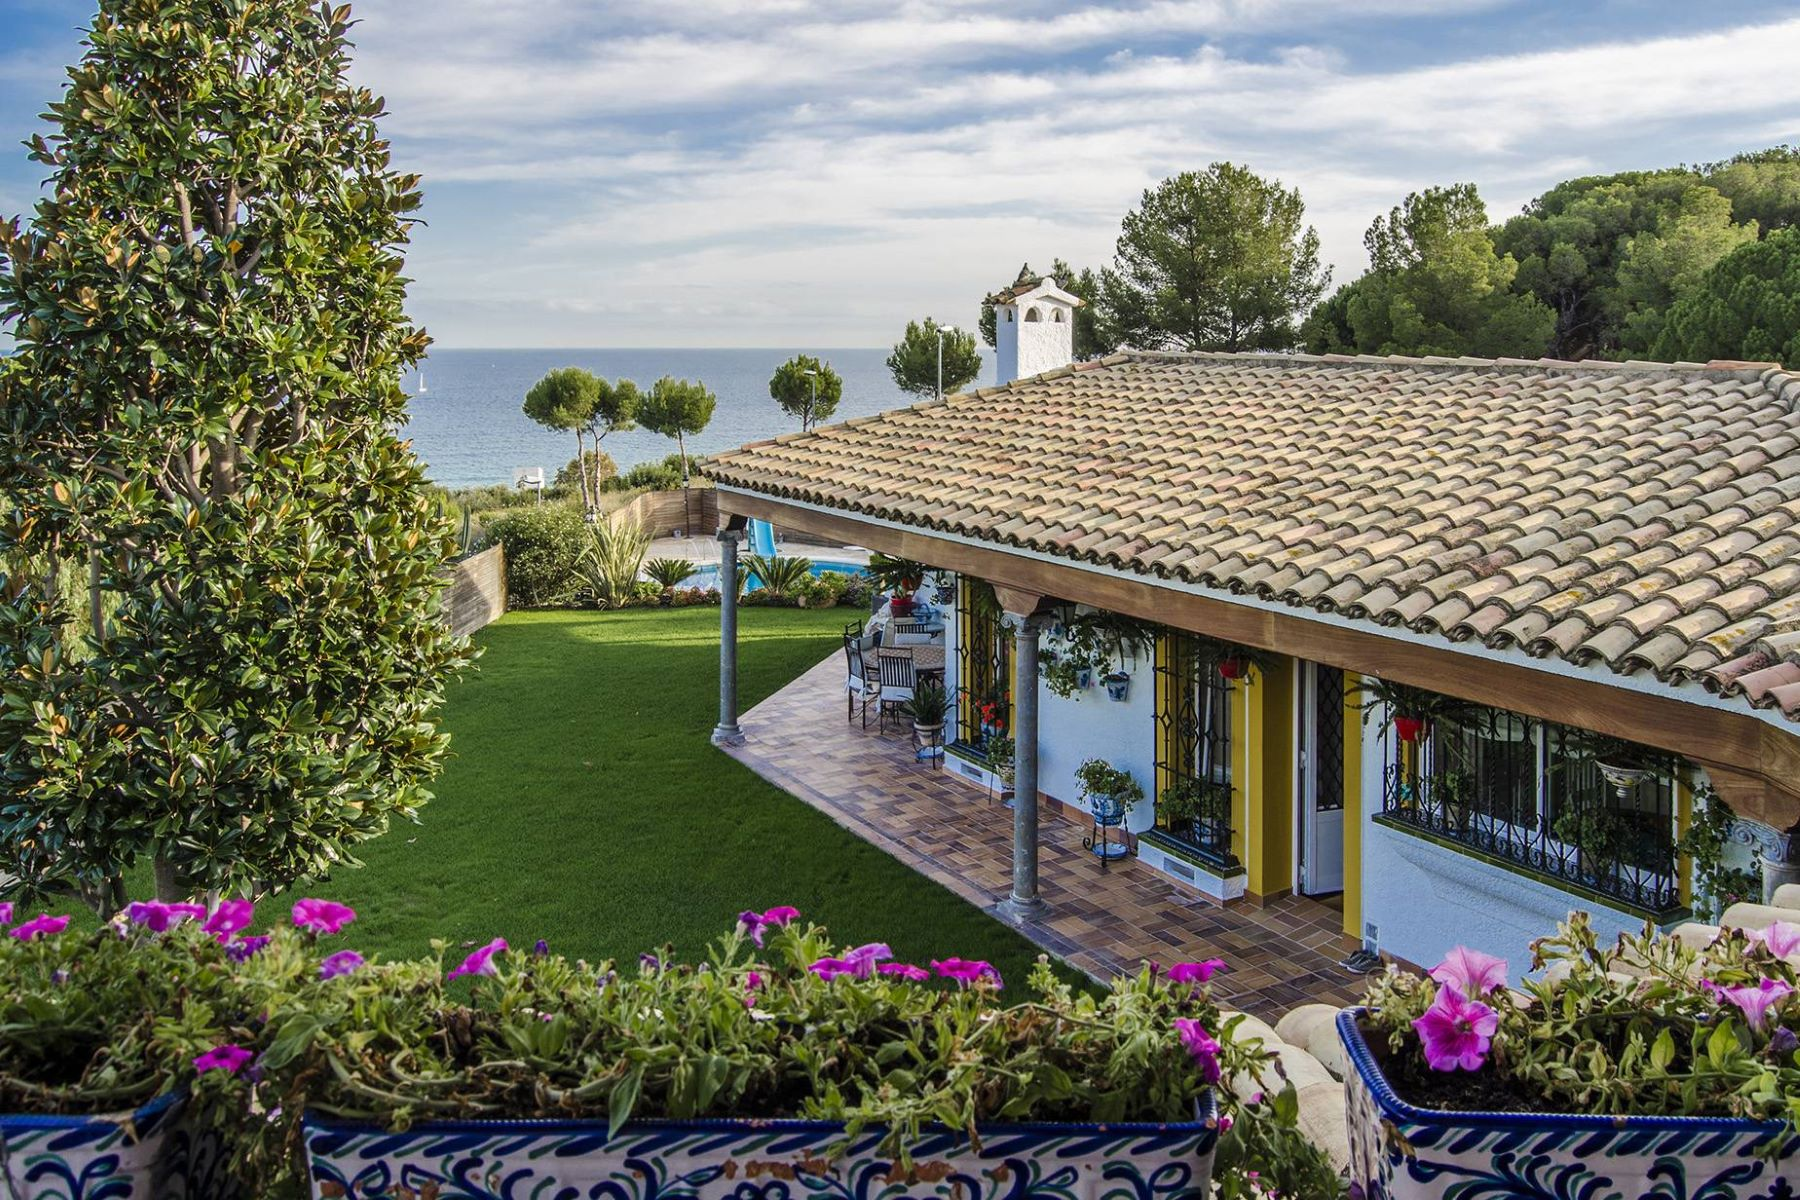 Single Family Home for Sale at A House with Andalusian Flavor and Sea Views in Alella Alella, Barcelona, 08328 Spain